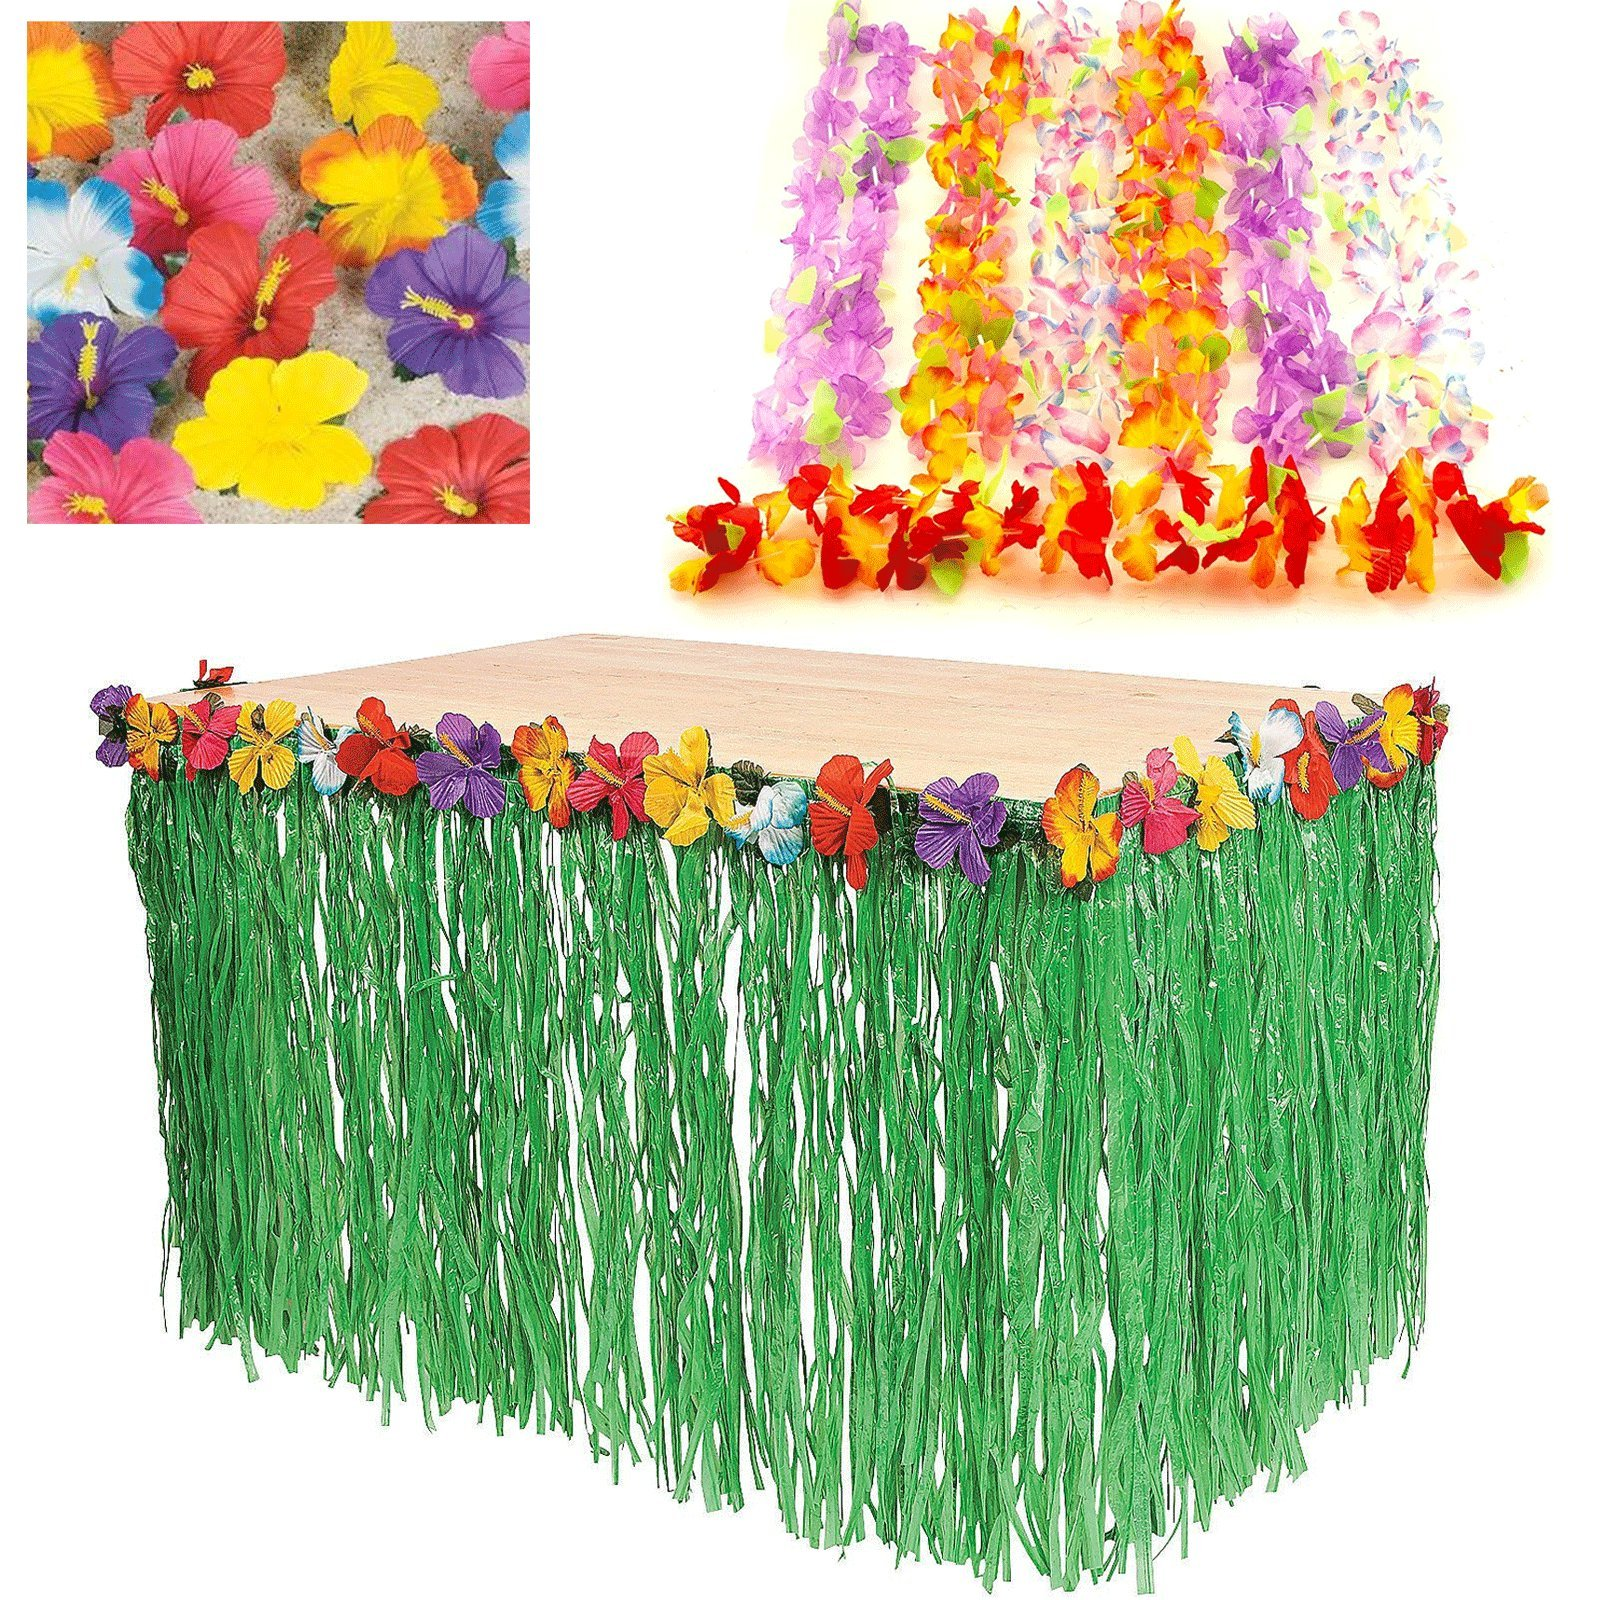 Adorox Luau Tropical Hawaiian Party Decoration Set Including 9 ft Table Skirt, 48 pcs Simulated Silk Flower Hula Leis Necklaces, 24 Hibiscus Flower